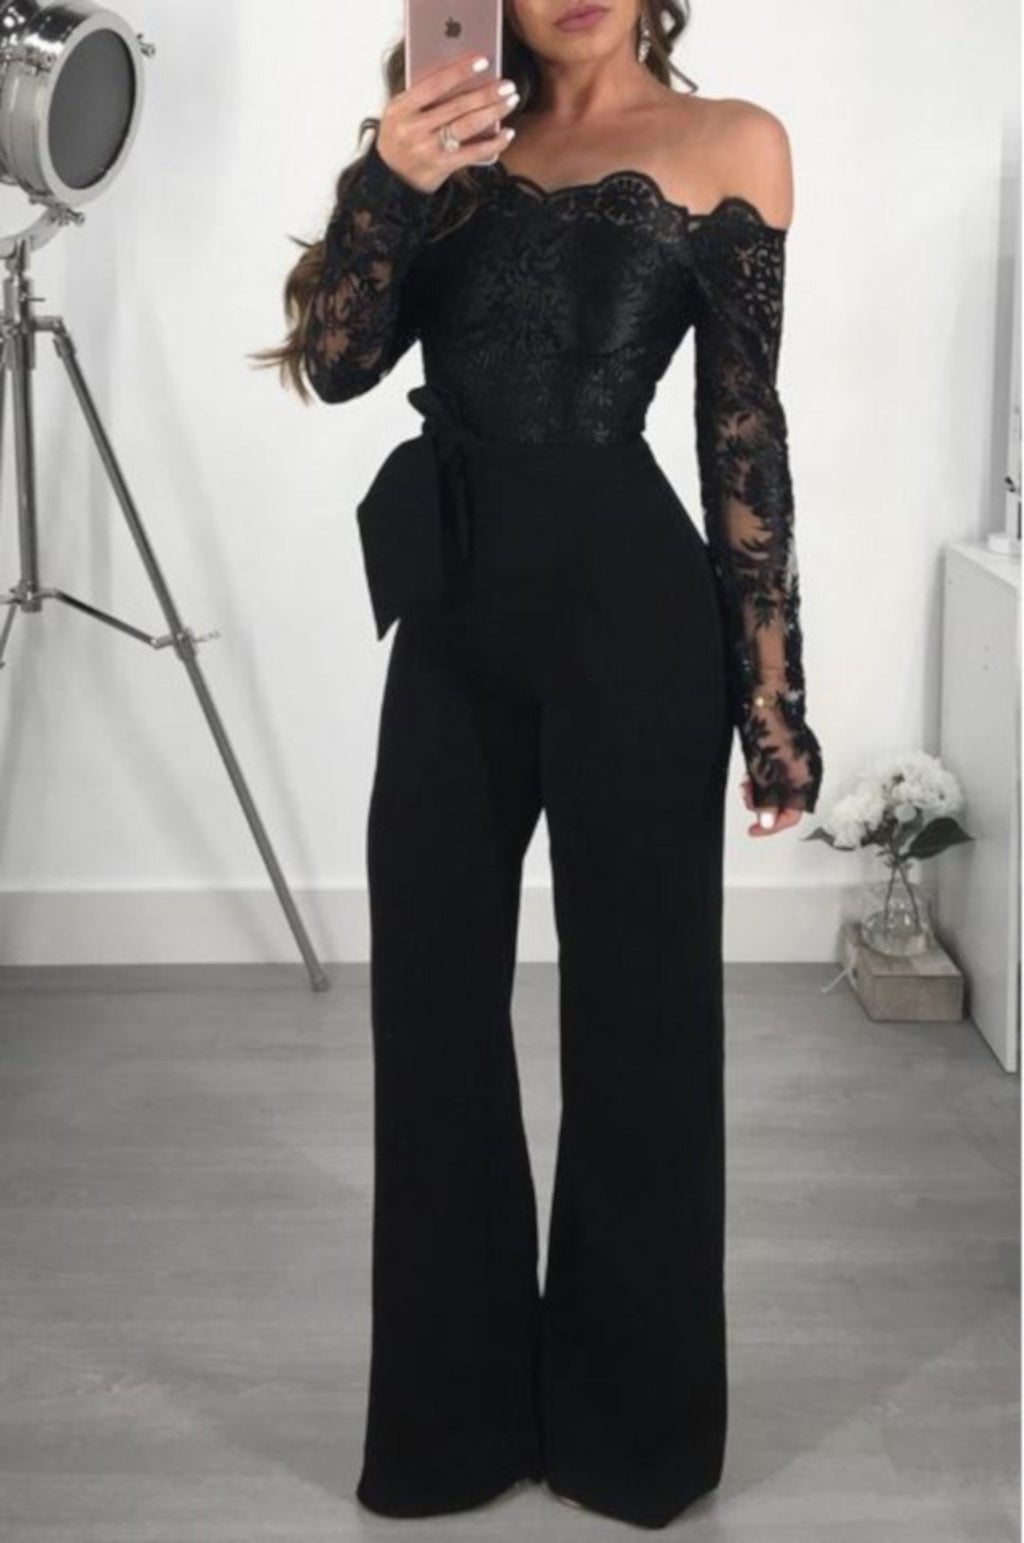 Elegant Black Lace Off Shoulder Jumpsuit Romper-Jumpsuit-Small-Black-Edgy Couture